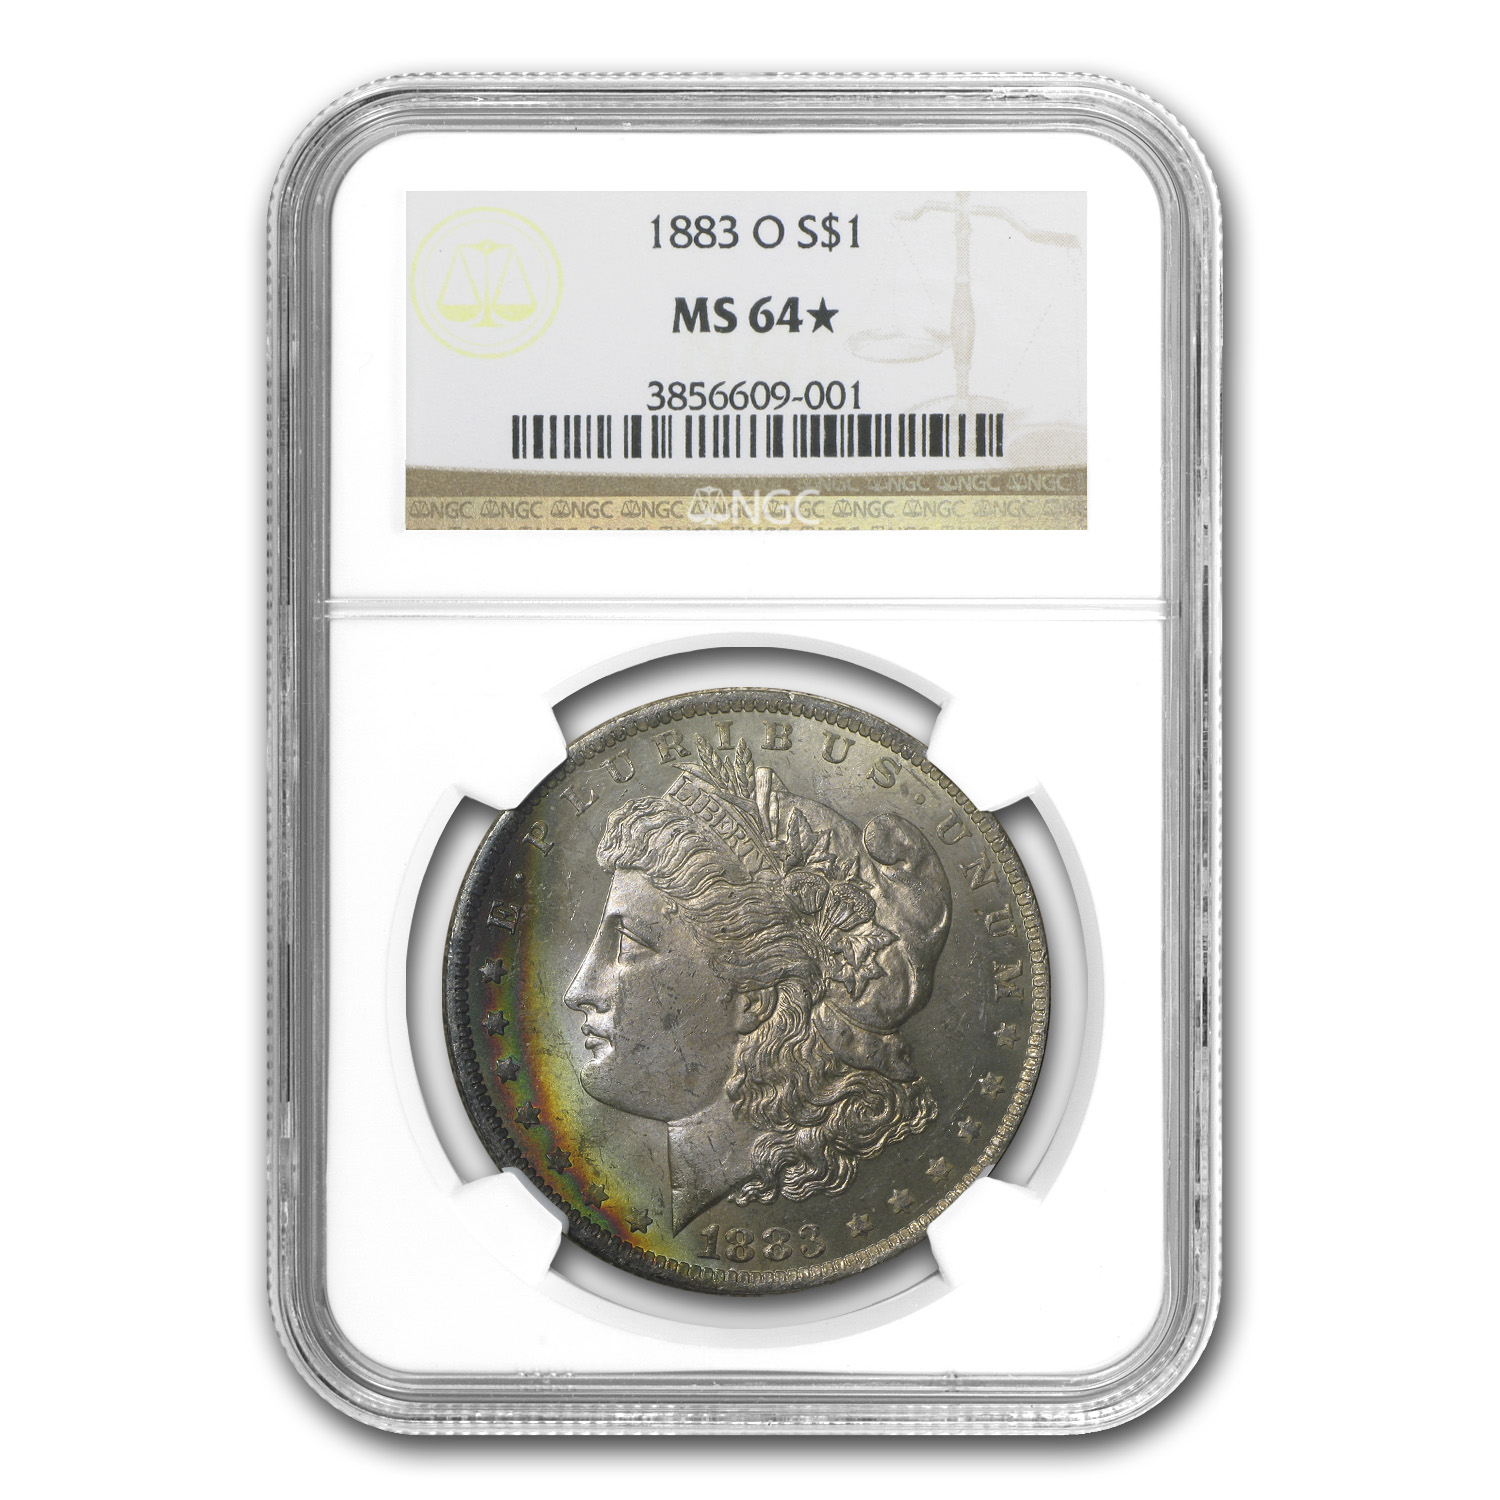 1883-O Morgan Dollar MS-64* Star NGC (Crescent Toning)